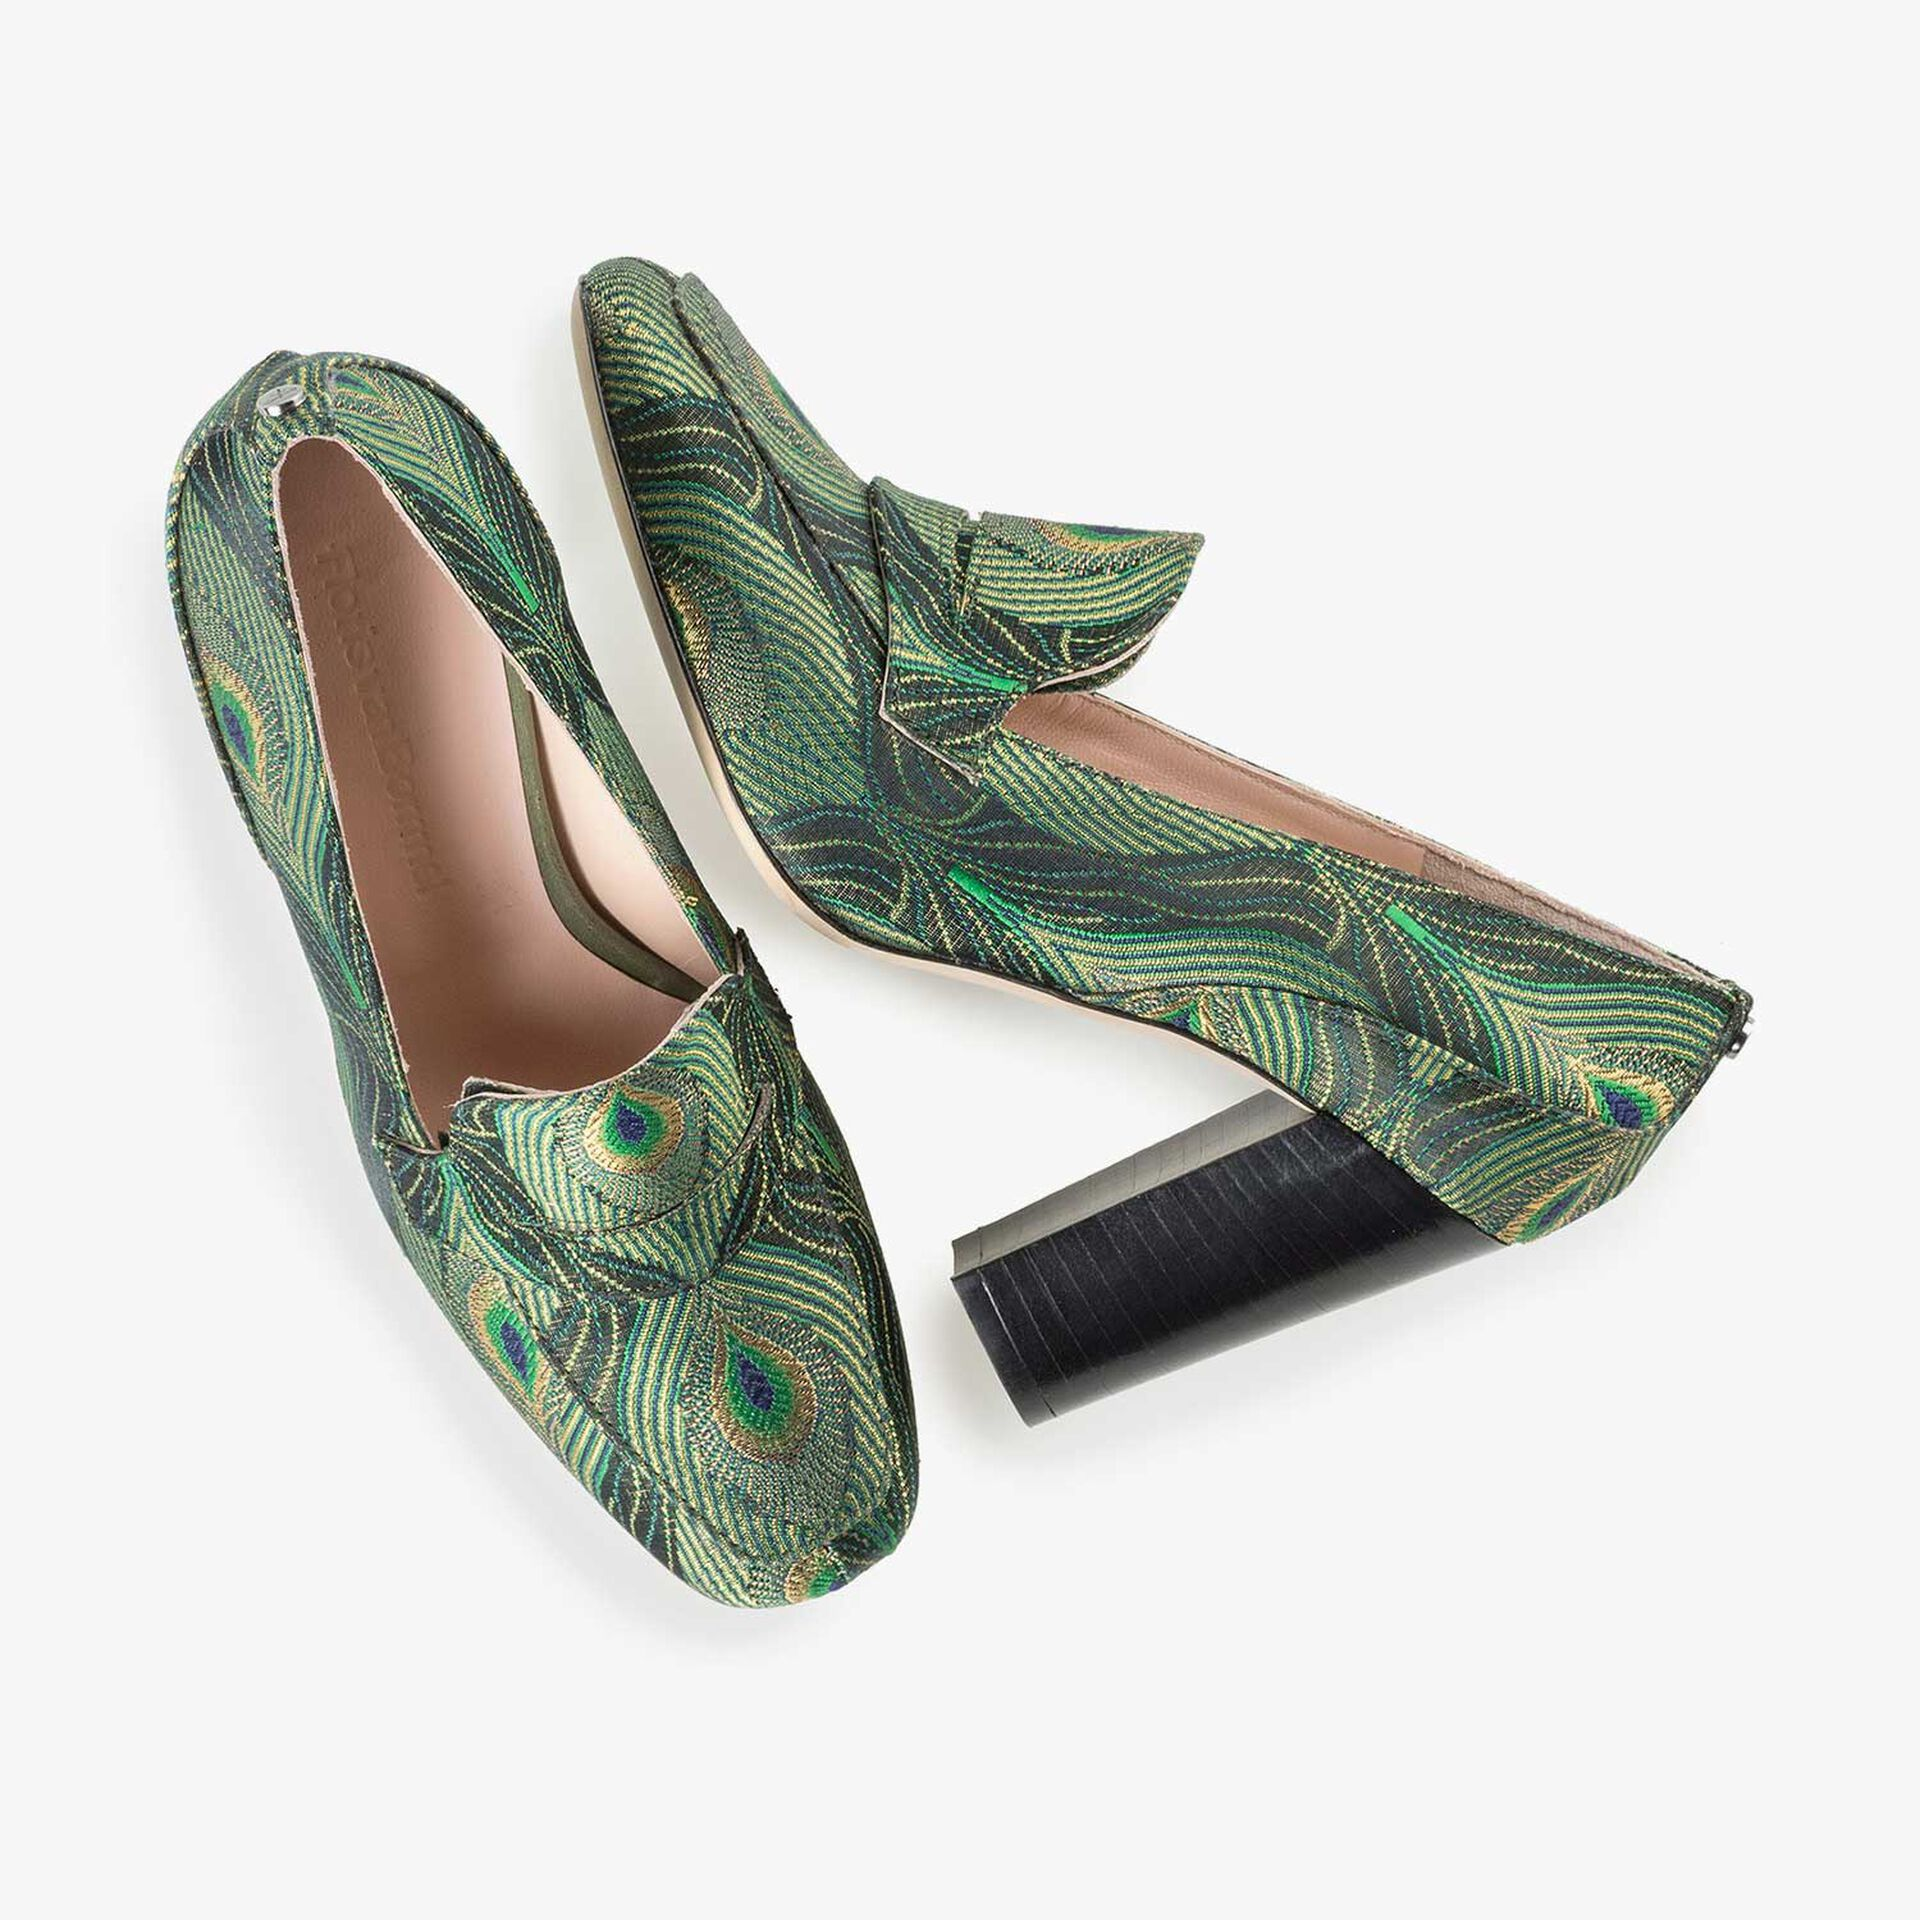 High heels with green peacock print